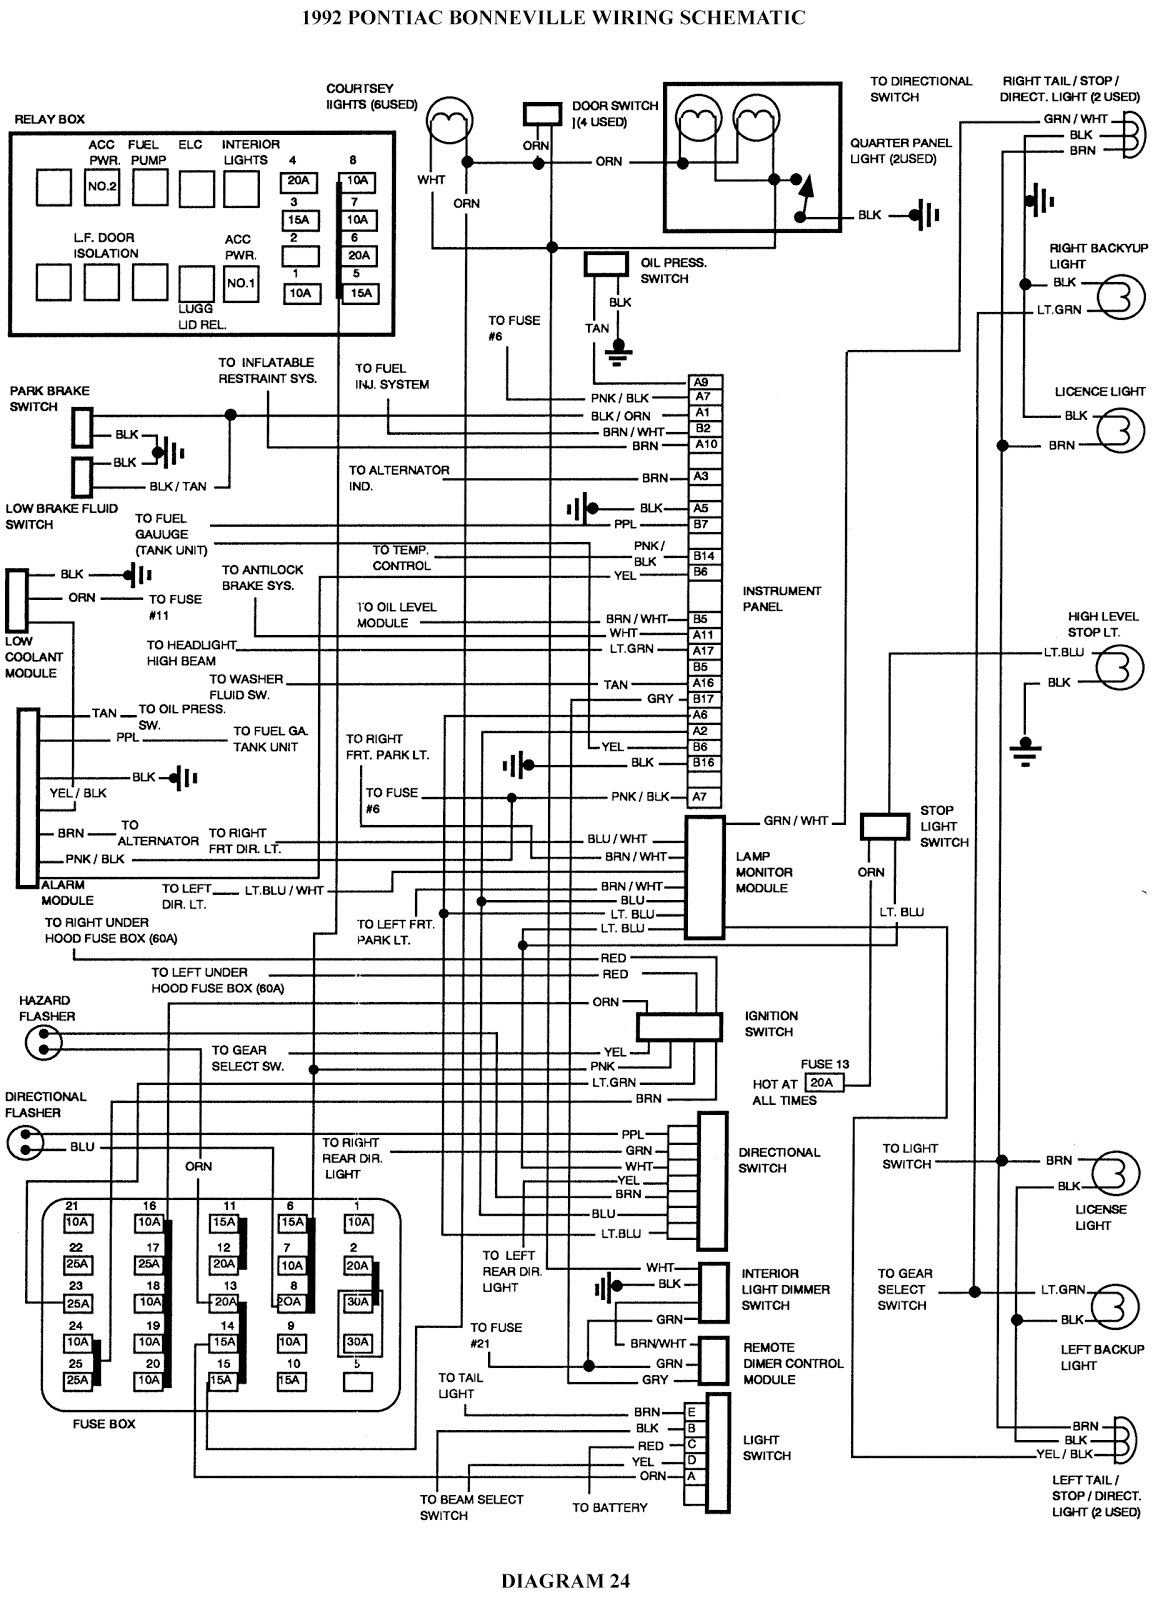 1992 pontiac bonneville wiring schematic schematic 1998 oldsmobile intrigue fuse box diagram